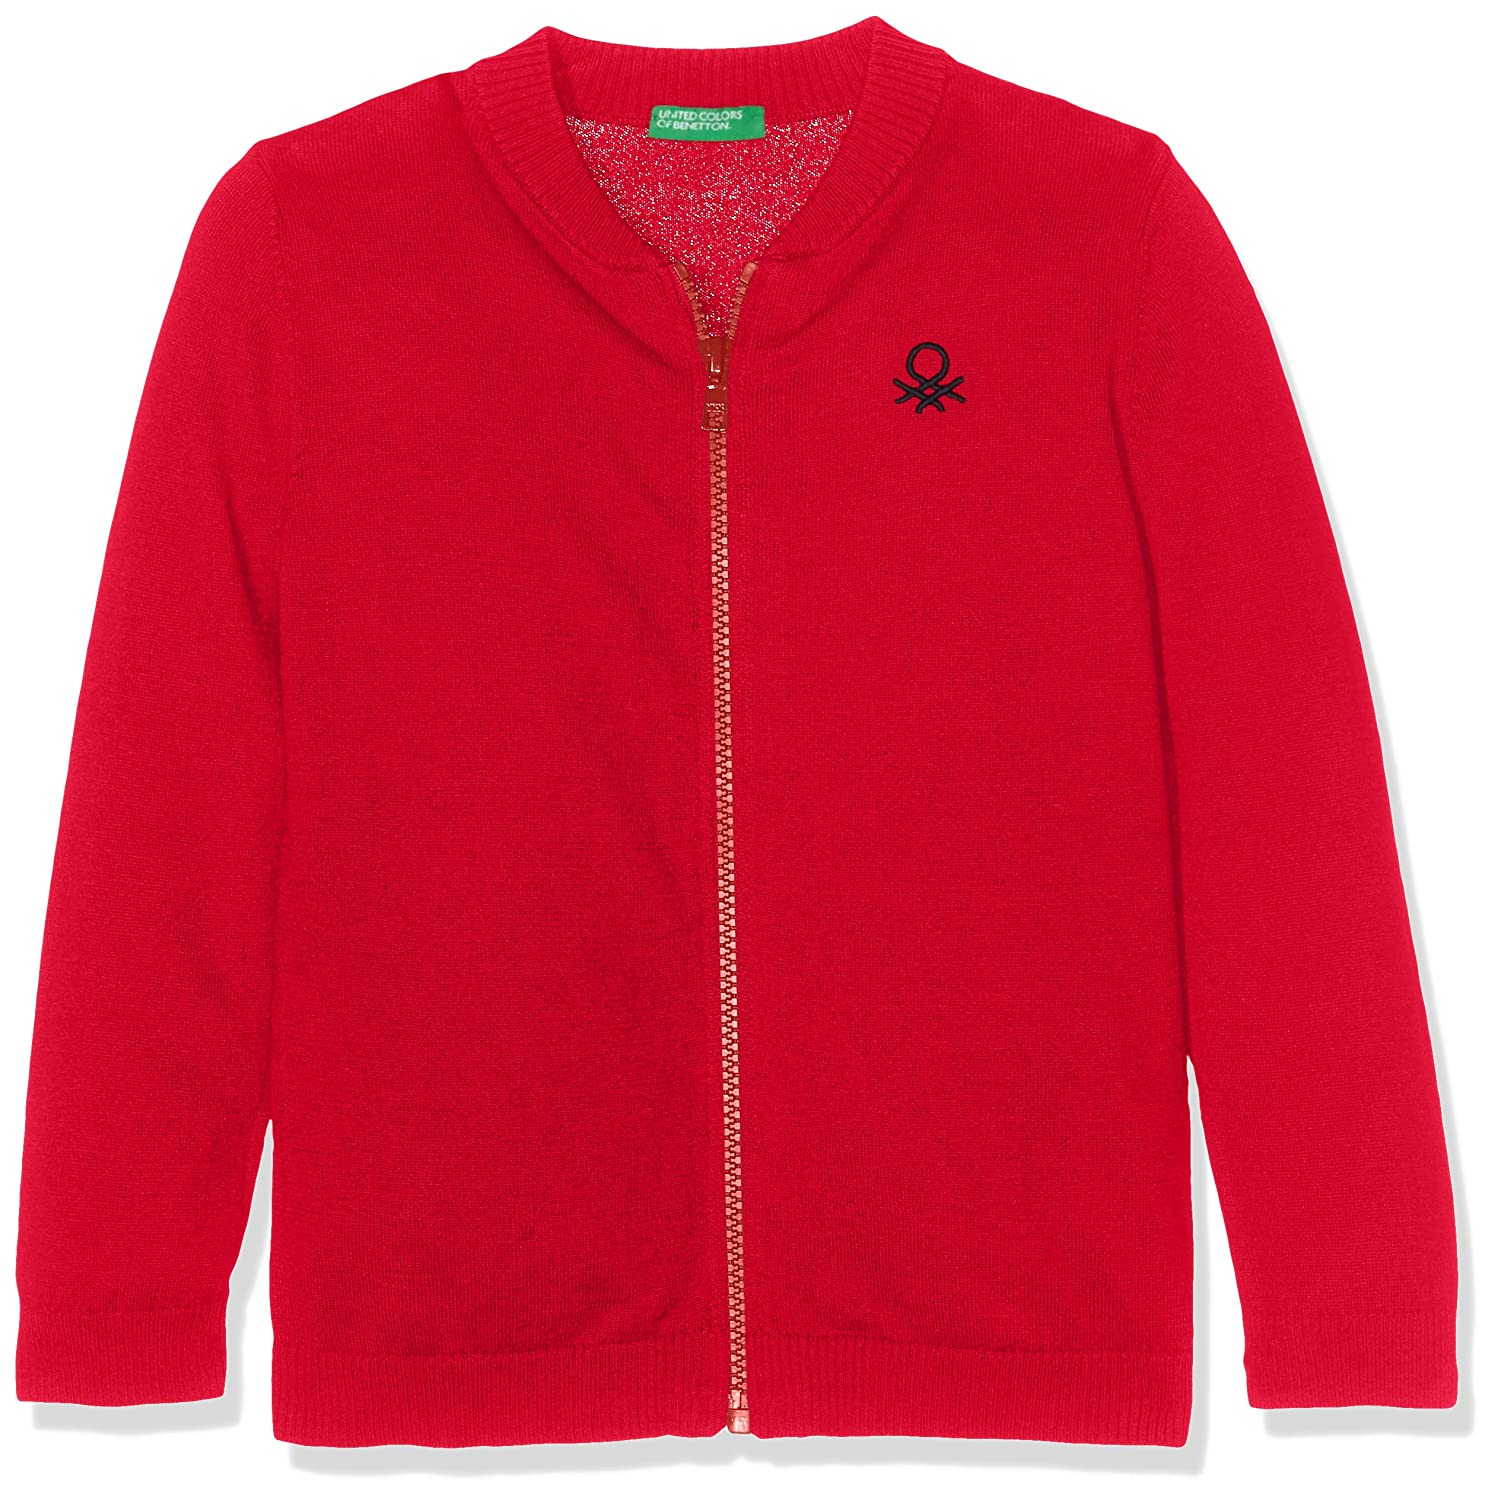 United Colors of Benetton Boy's L/S Sweater Jumper